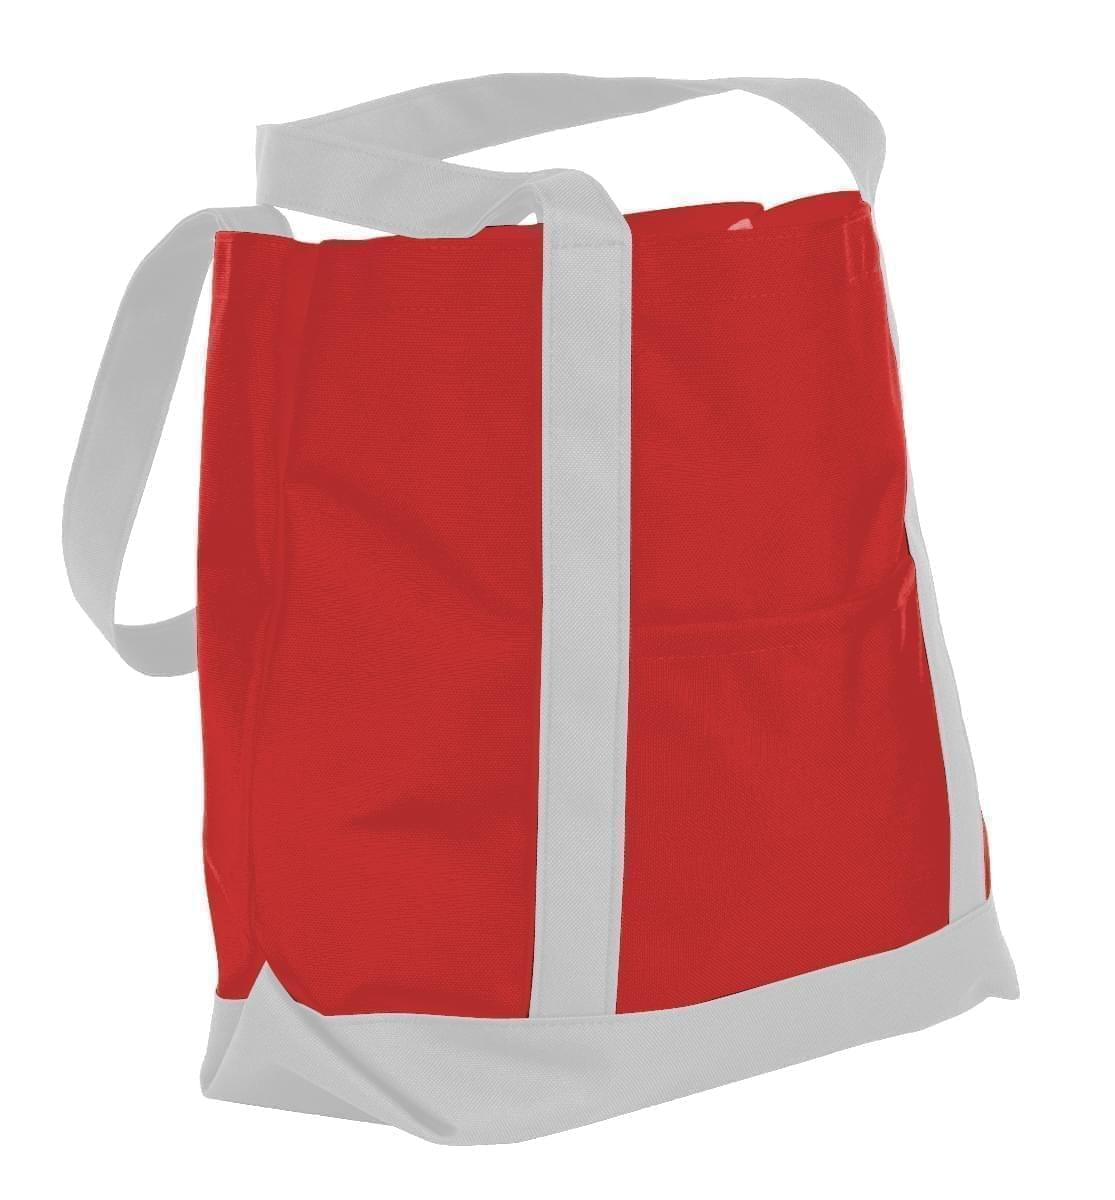 USA Made Canvas Fashion Tote Bags, Red-White, XAACL1UAEP